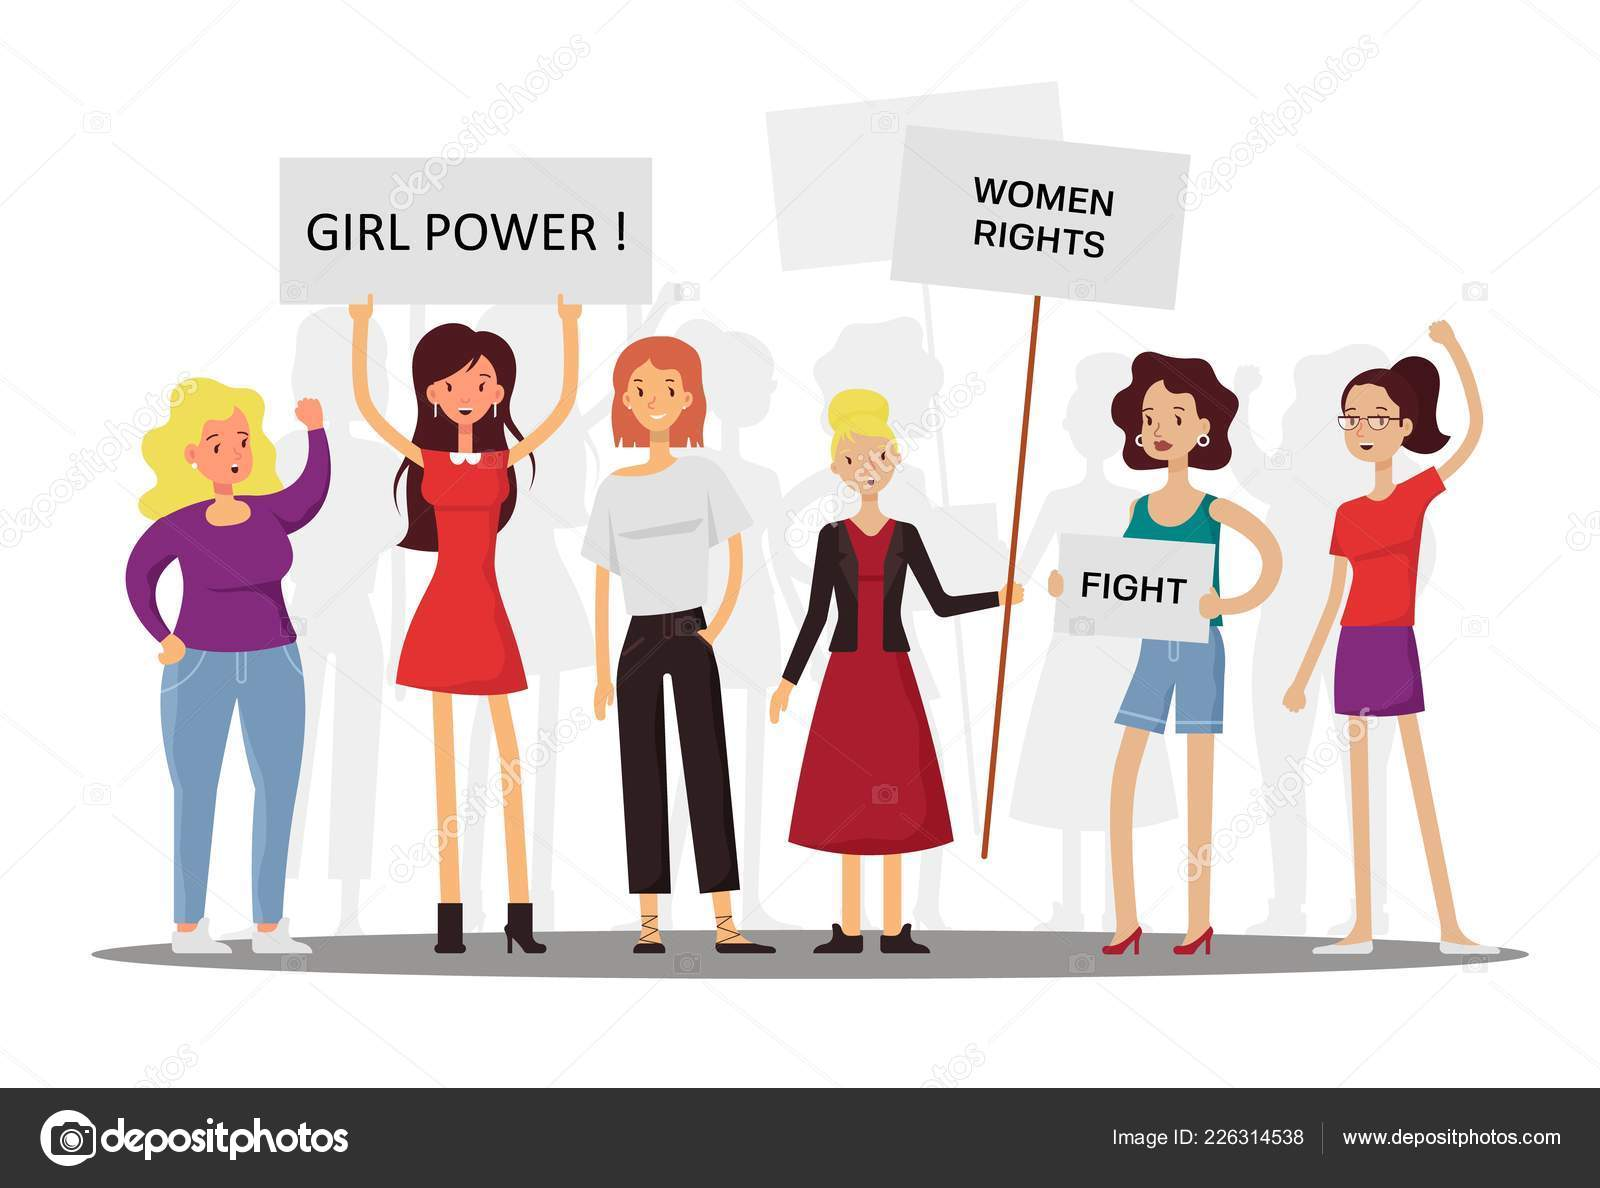 Girl power and feminism concept vector flat illustration. Group of women fighting for women rights while holding signs with motivational phrases and feminist quotes.